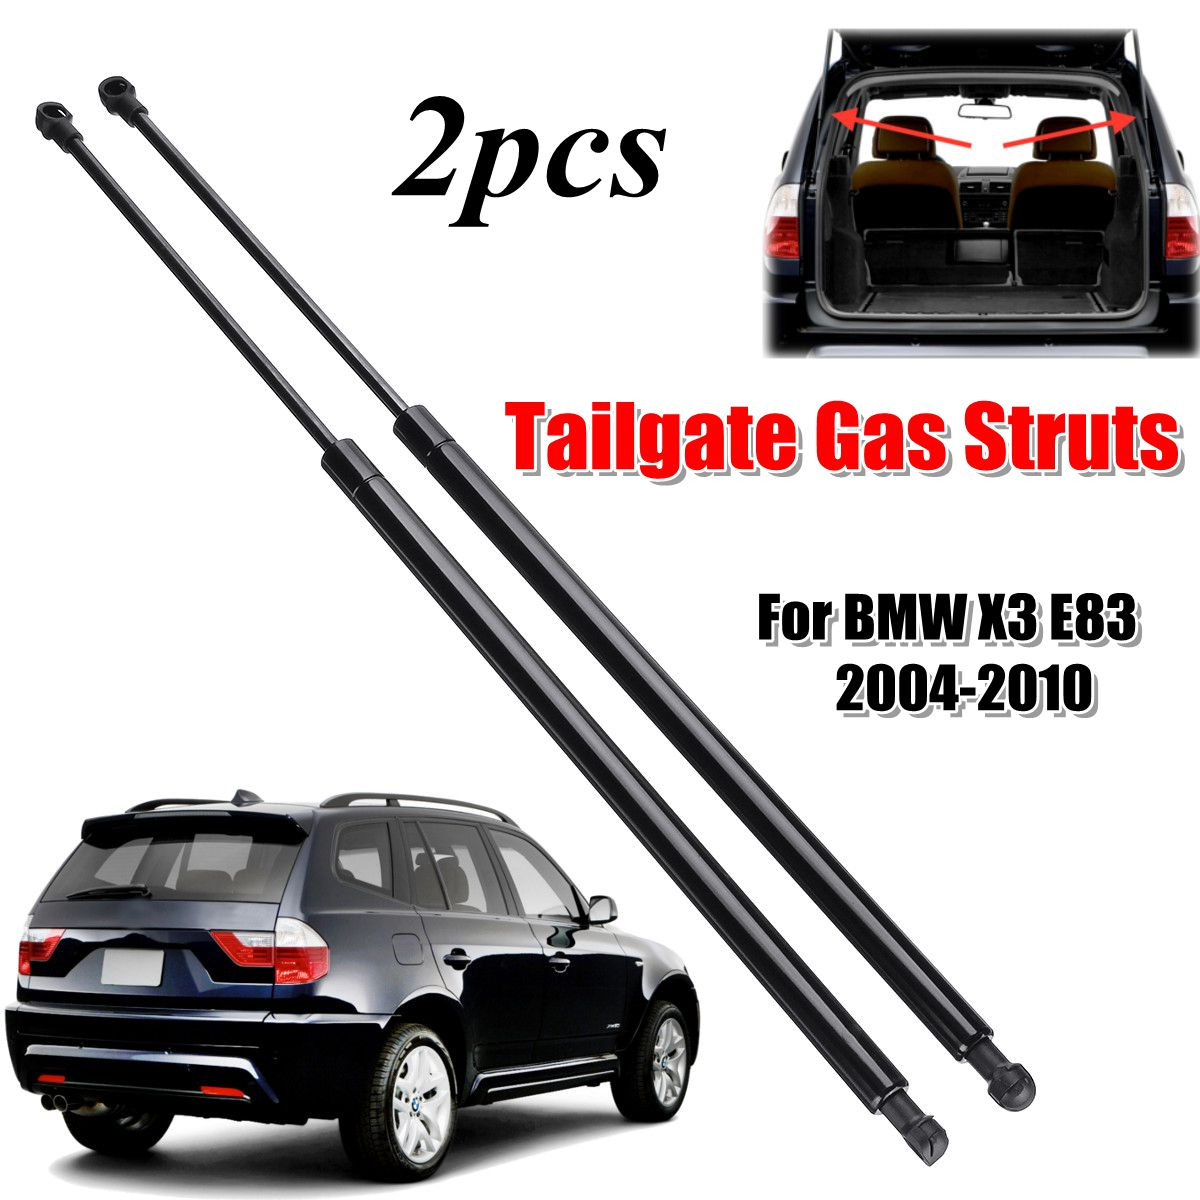 2Pcs Rear Trunk Tailgate Gas Spring Shock Lift Struts Support Rod Arm Bars Bracket 51243400379 For BMW E83 X3 2004 2005 - 2010